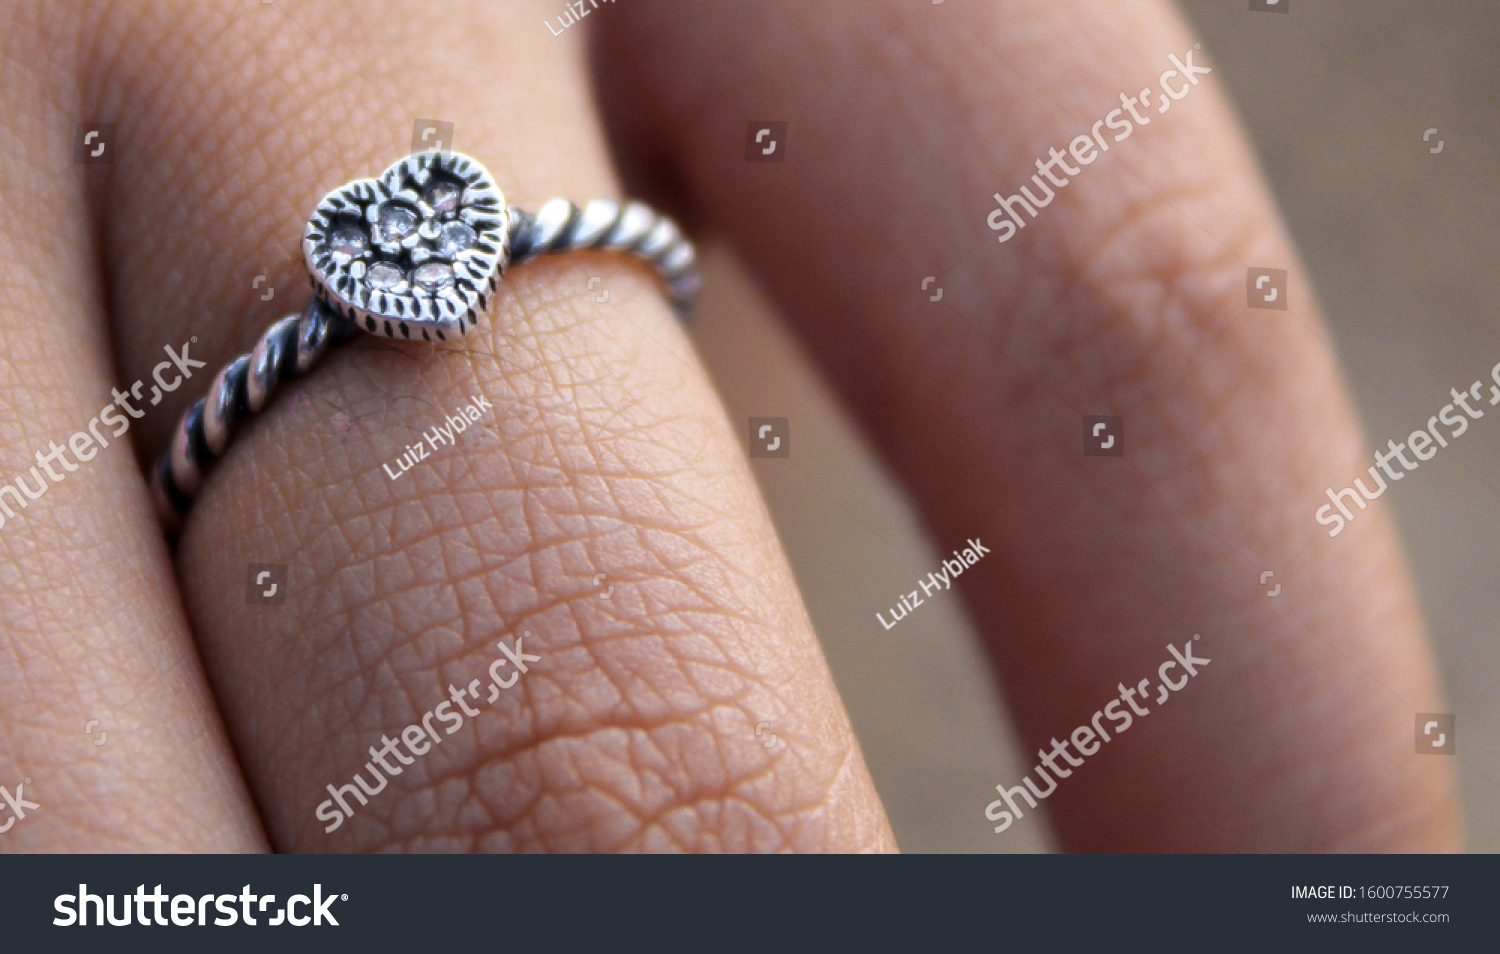 Woman wearing a heart shaped silver ring (finger close up). Twisted band ring. Dark skinned hand texture.